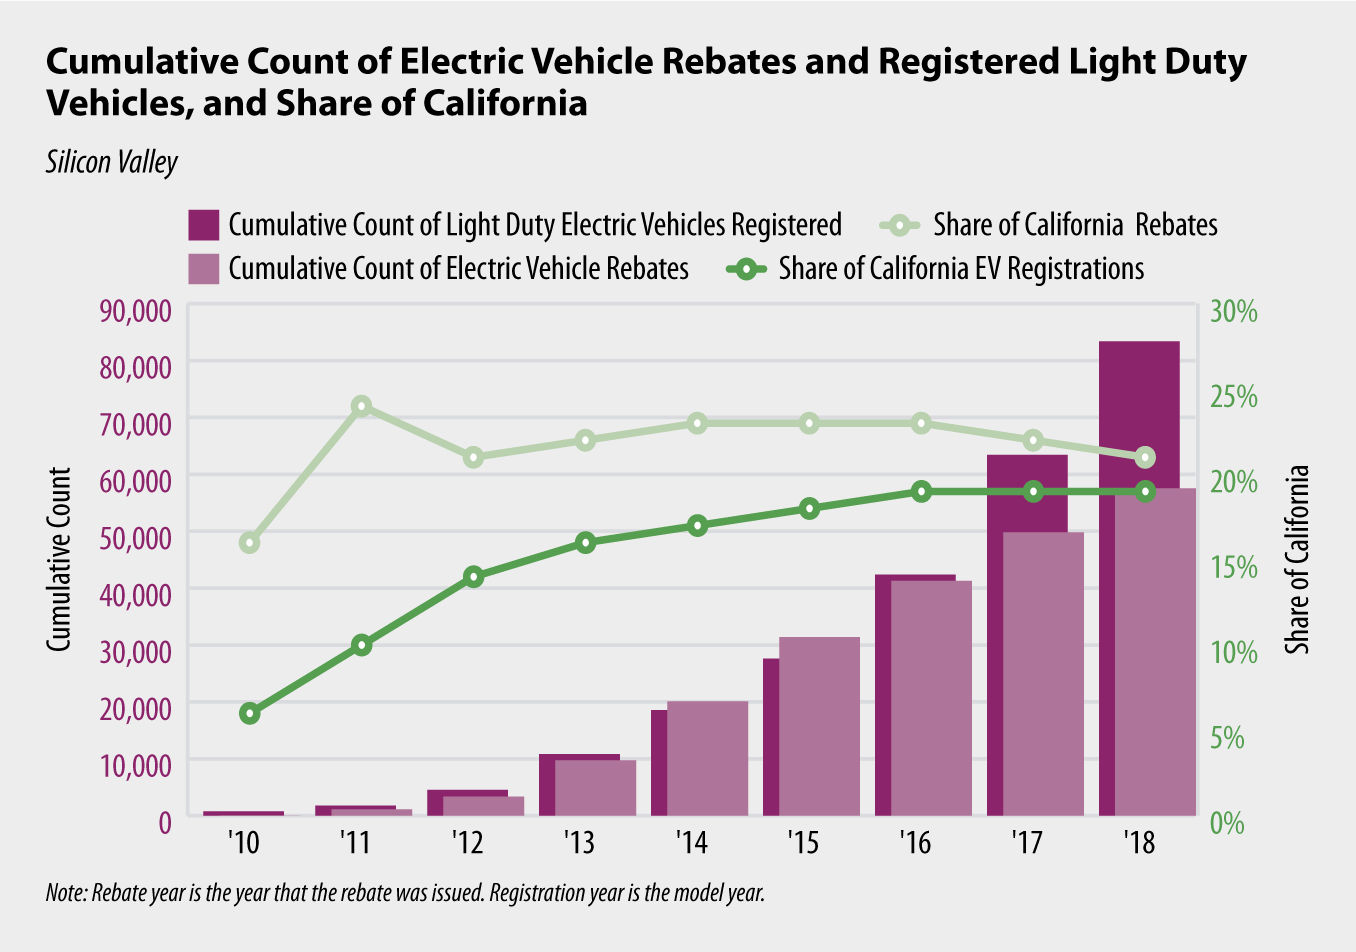 Chart 4: Cumulative Count of Electric Vehicle Rebates and Registered Light Duty Vehicles, and Share of California